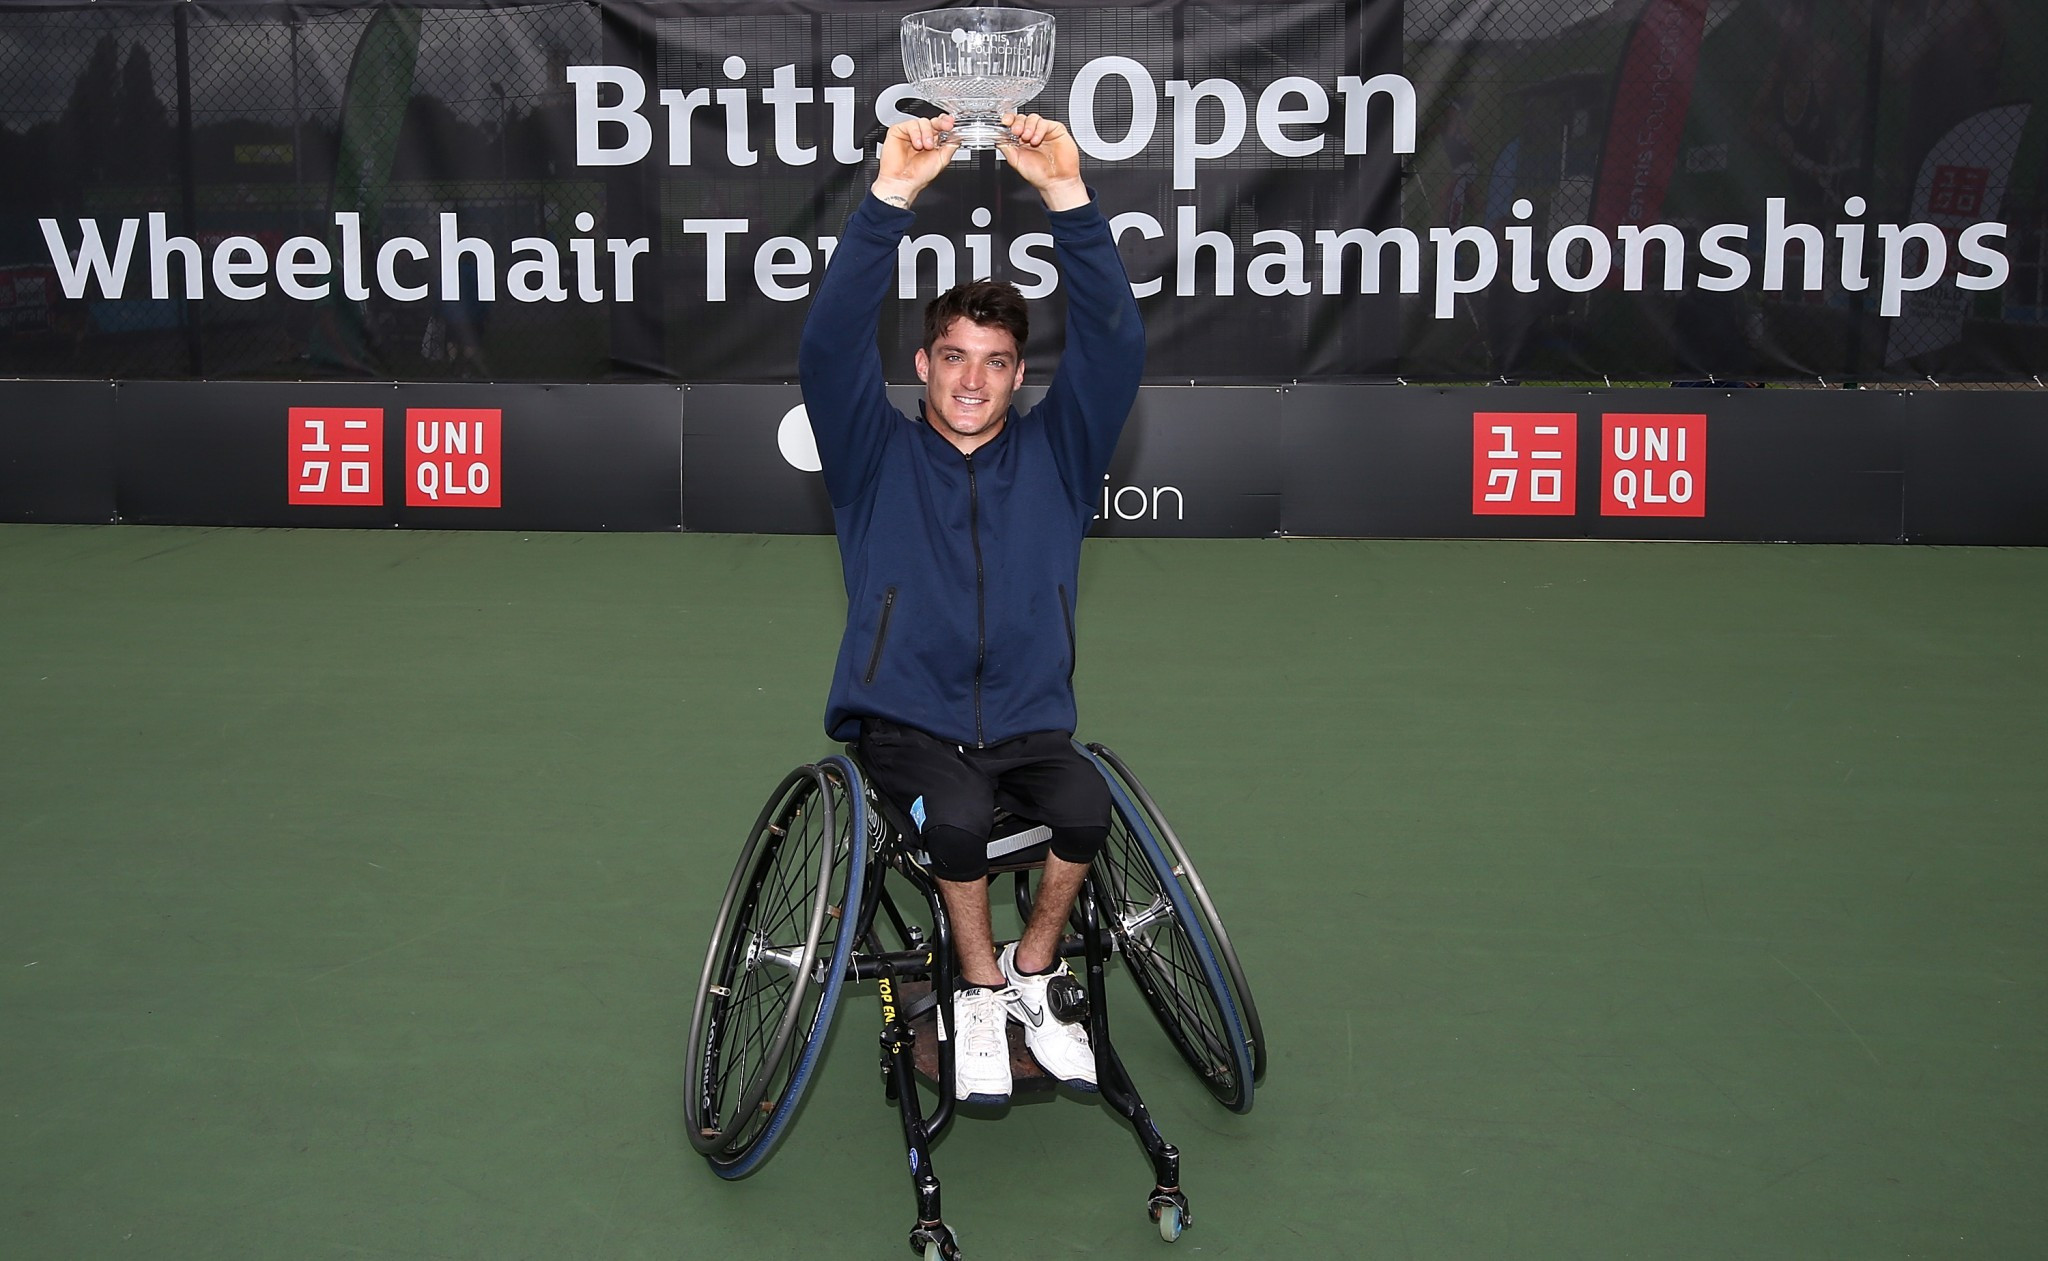 World's leading wheelchair tennis stars stay at top of rankings